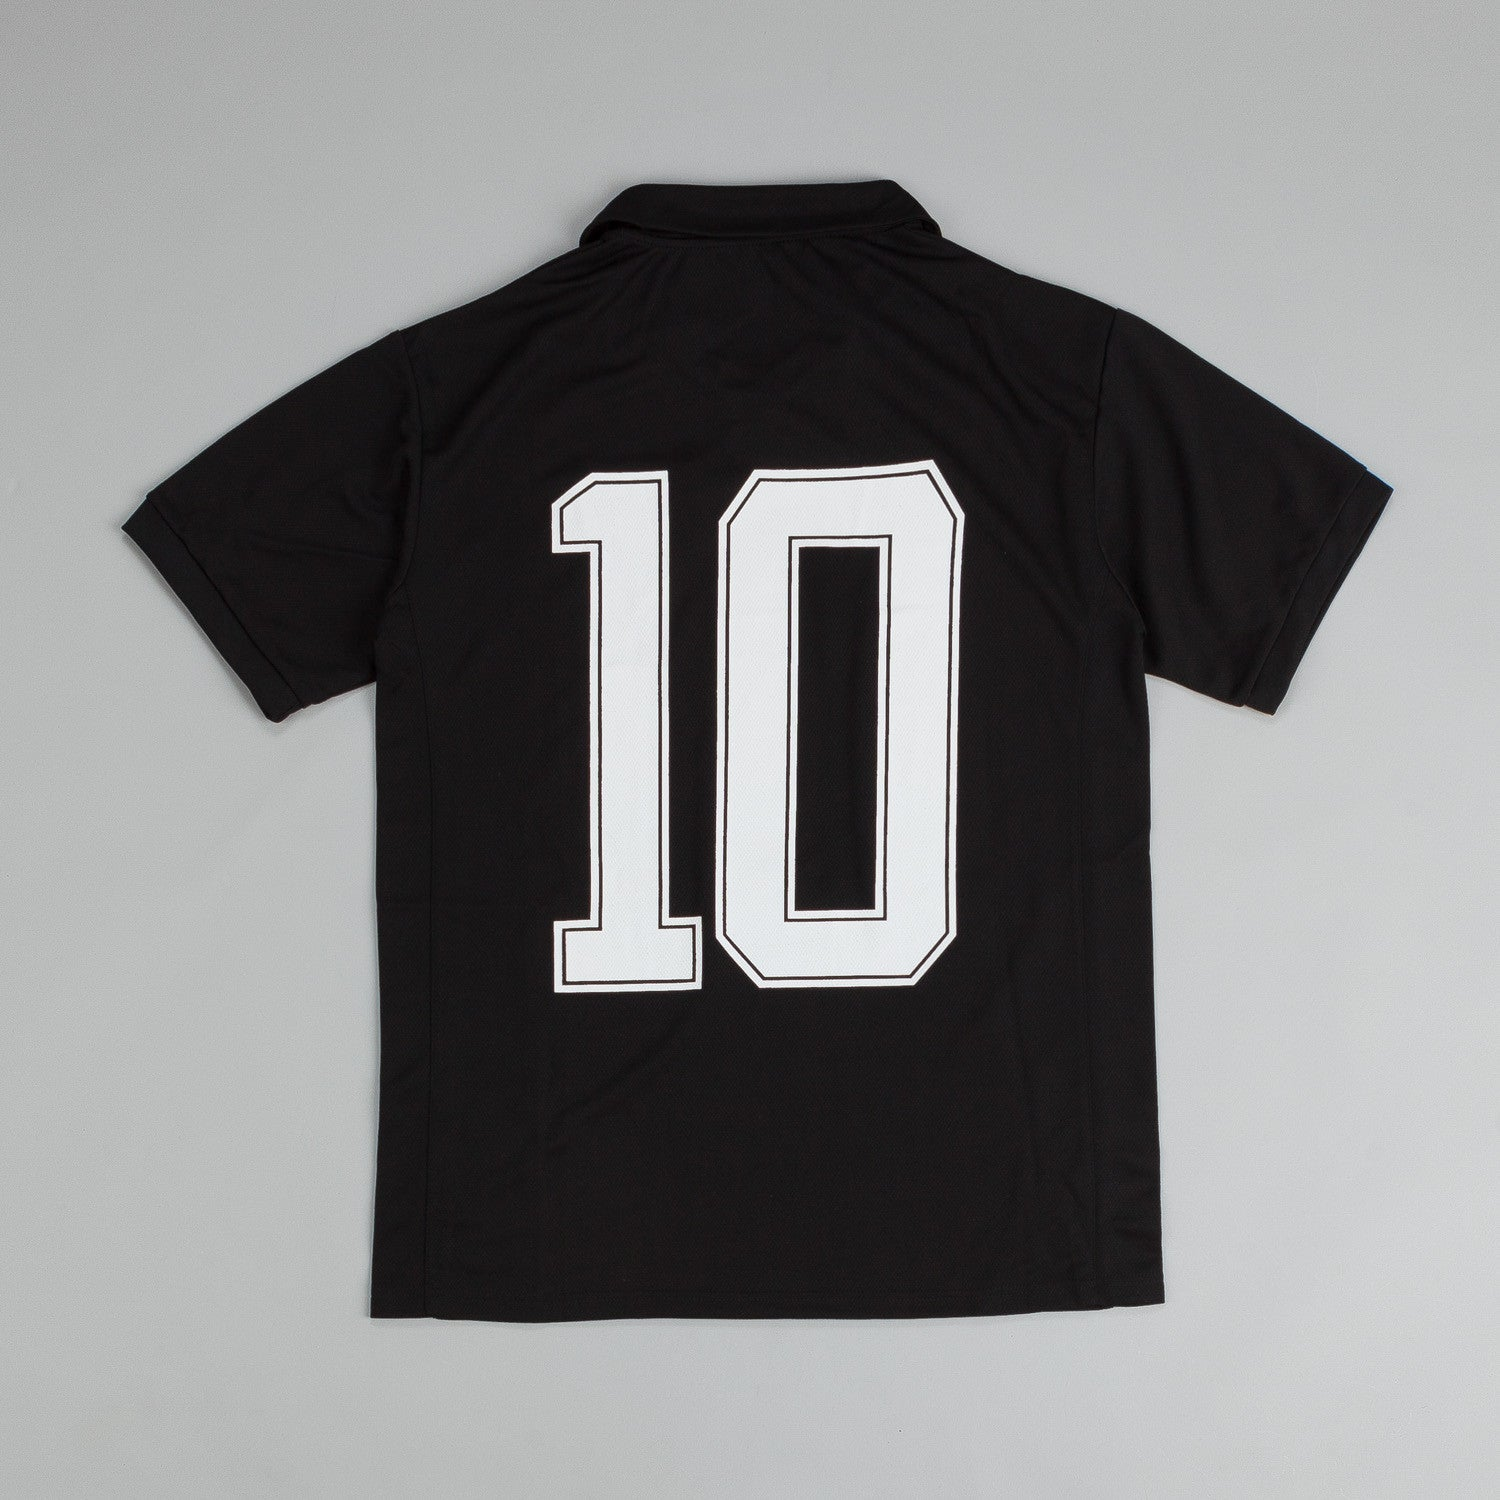 Hopps Lion Jersey T-Shirt Black